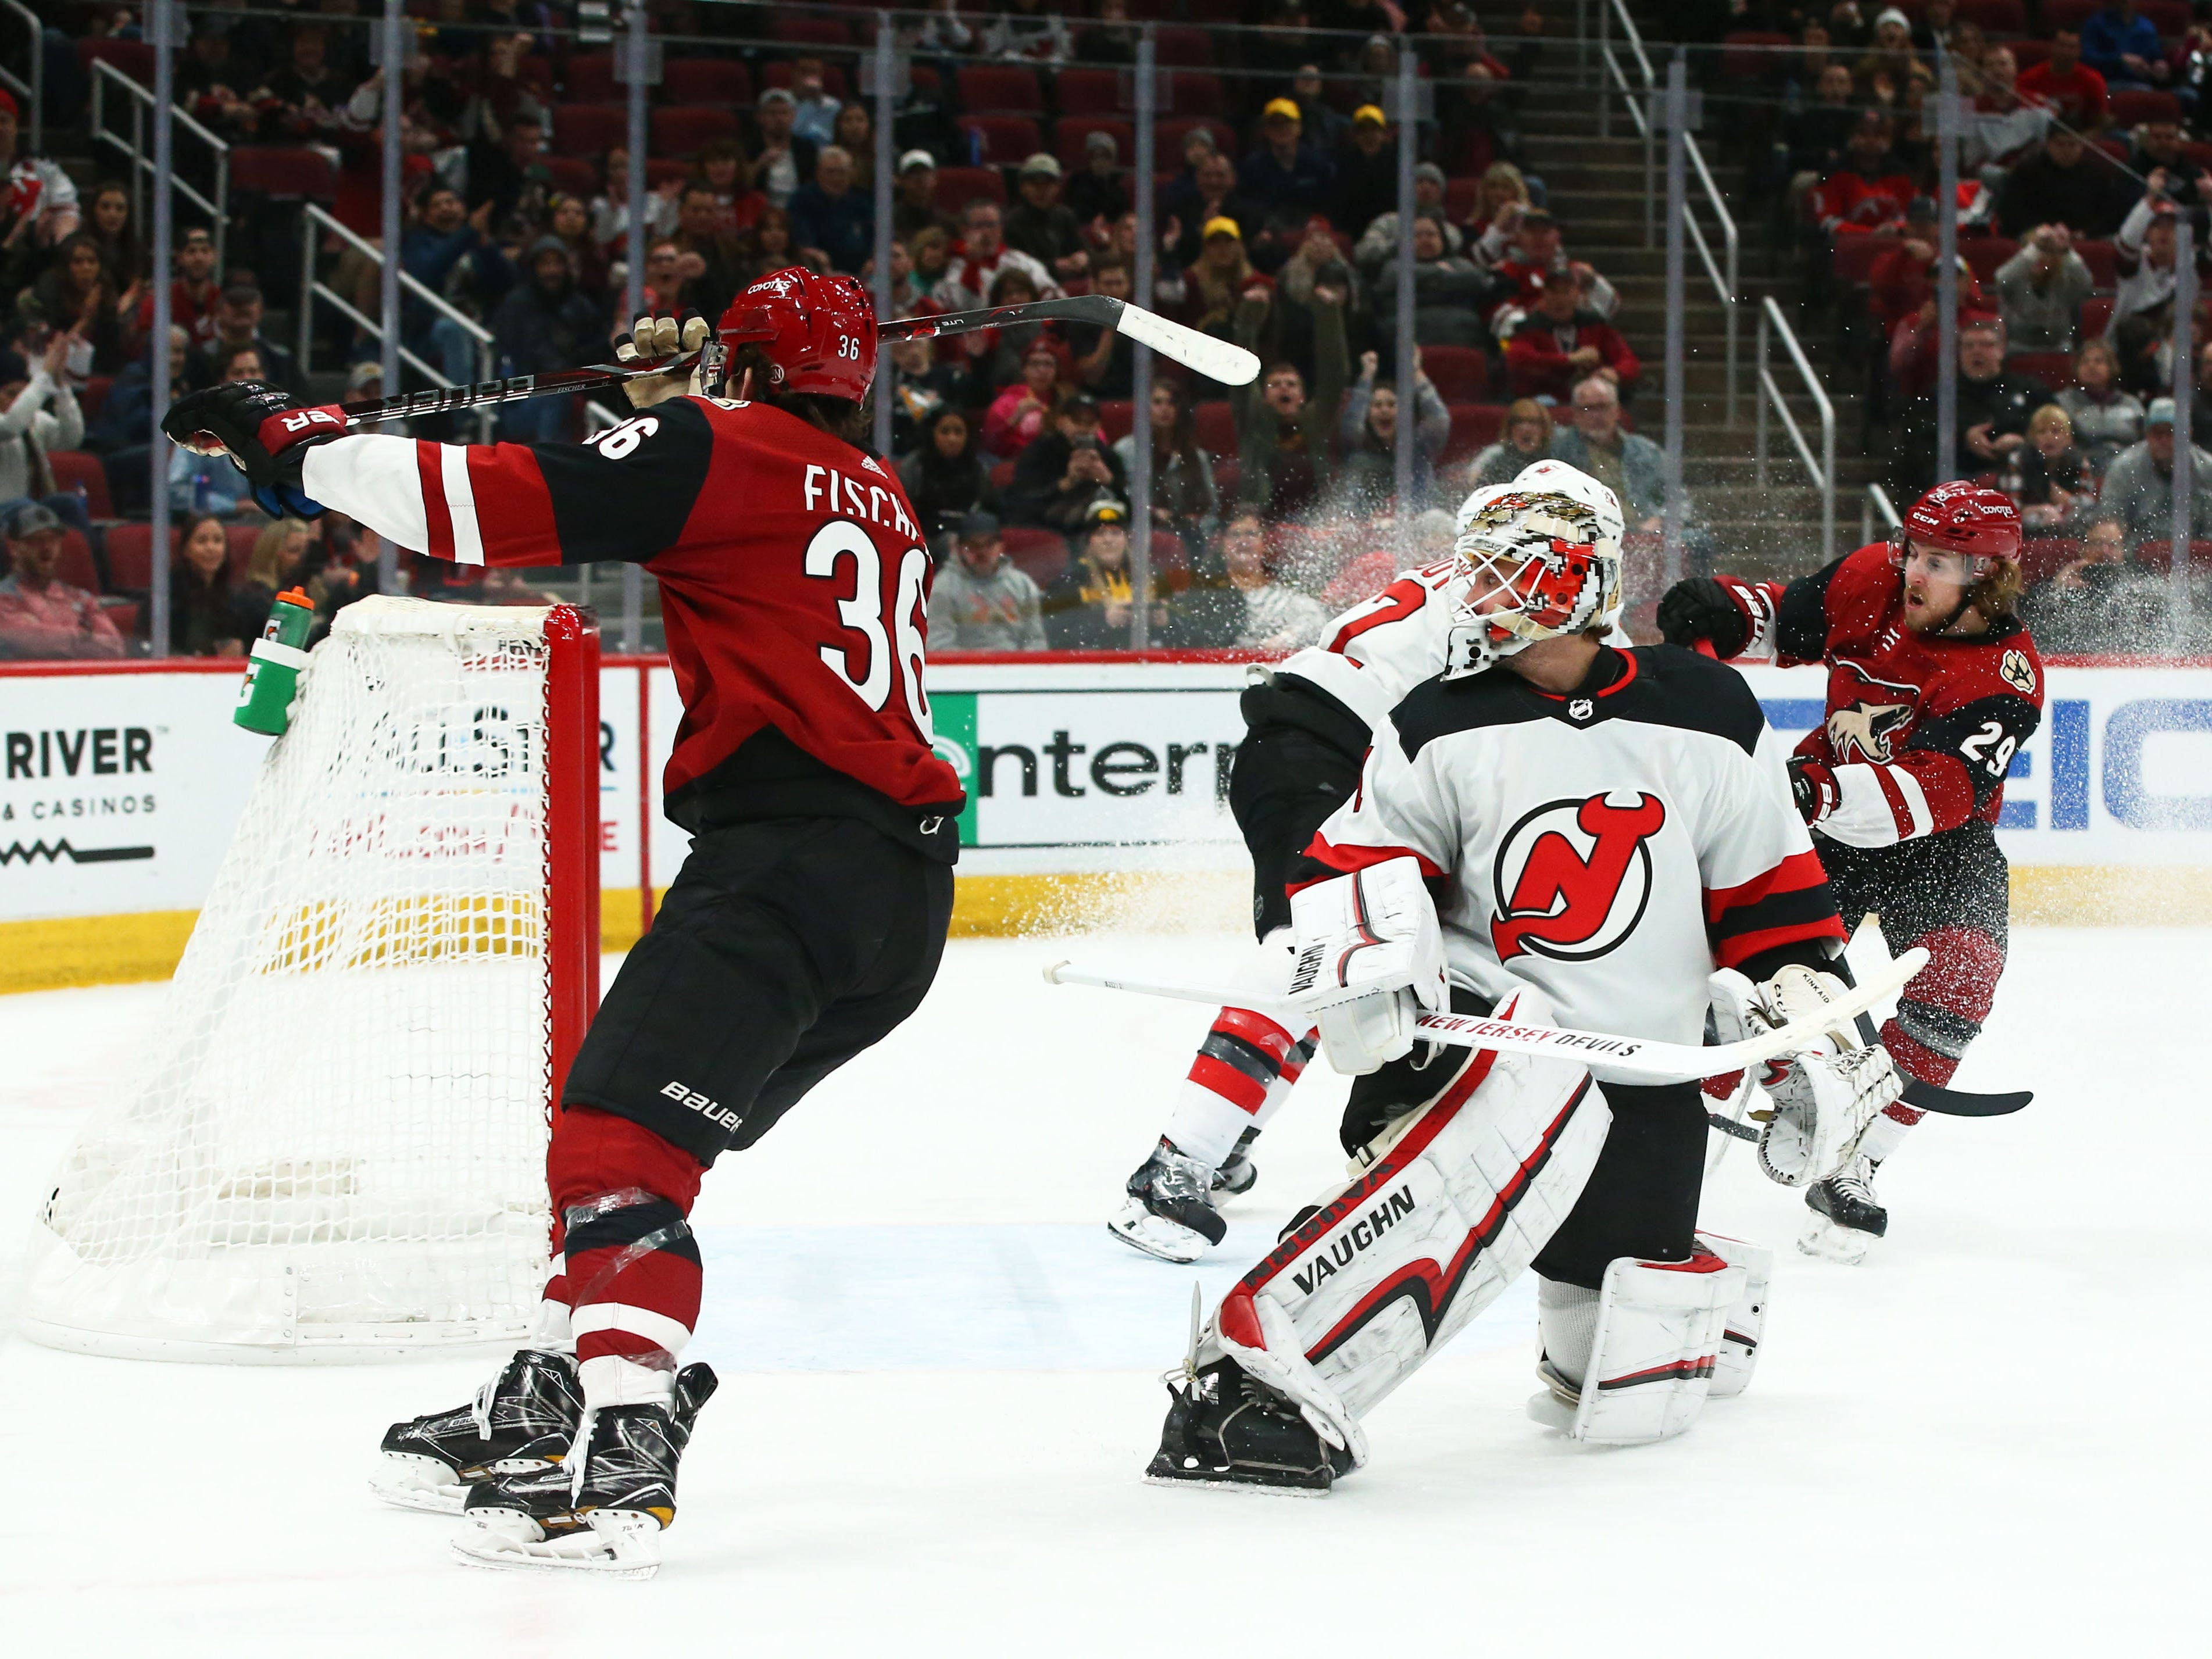 Arizona Coyotes' Christian Fischer (36) scores a goal against the New Jersey Devils in the second period on Jan. 4 at Gila River Arena.